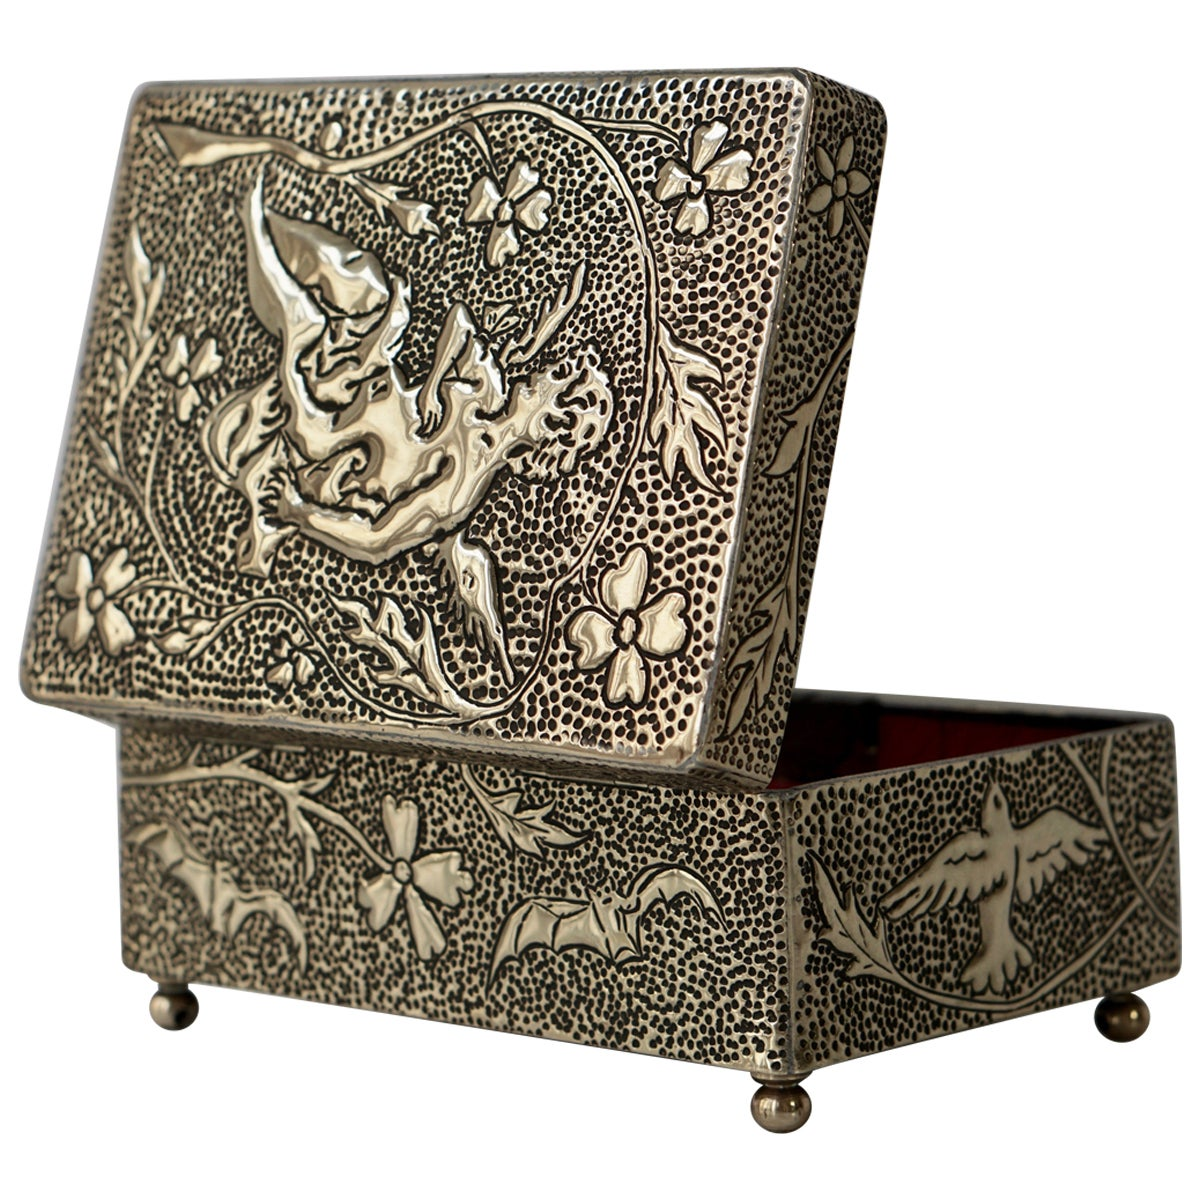 France Art Nouveau Silvered Jewelry Box Casket, circa 1900